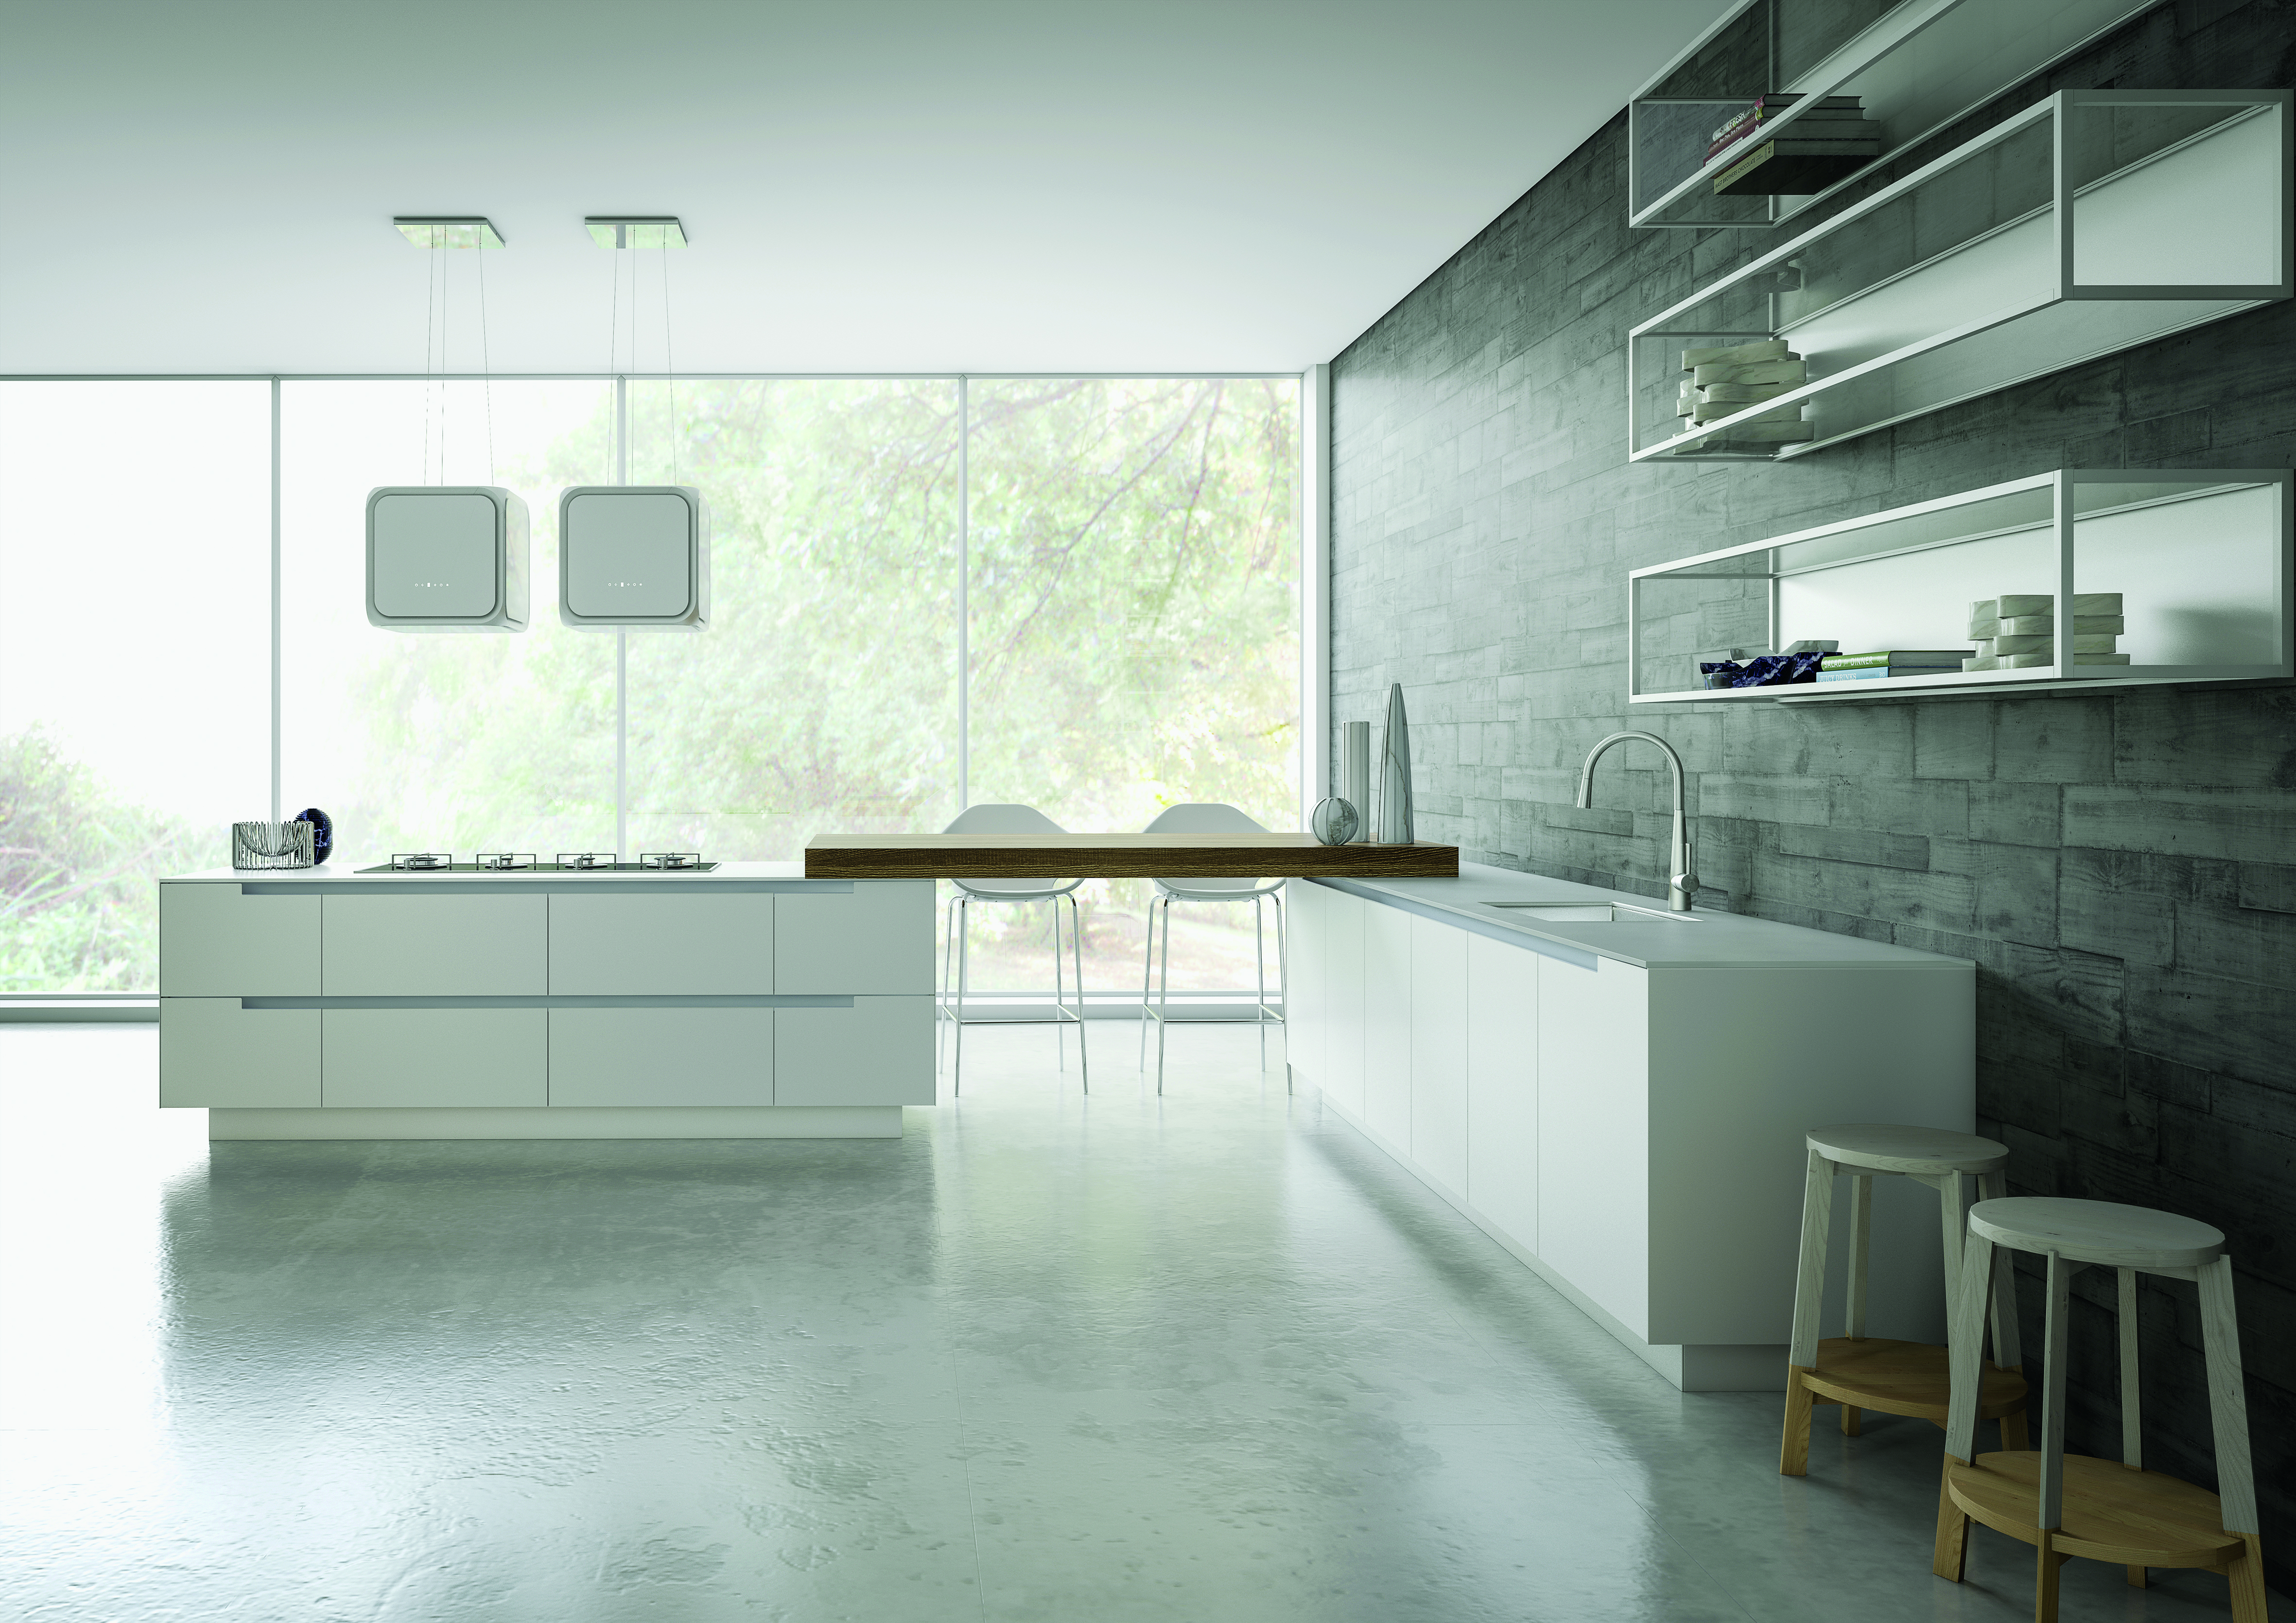 Details that make the difference - Home Appliances World